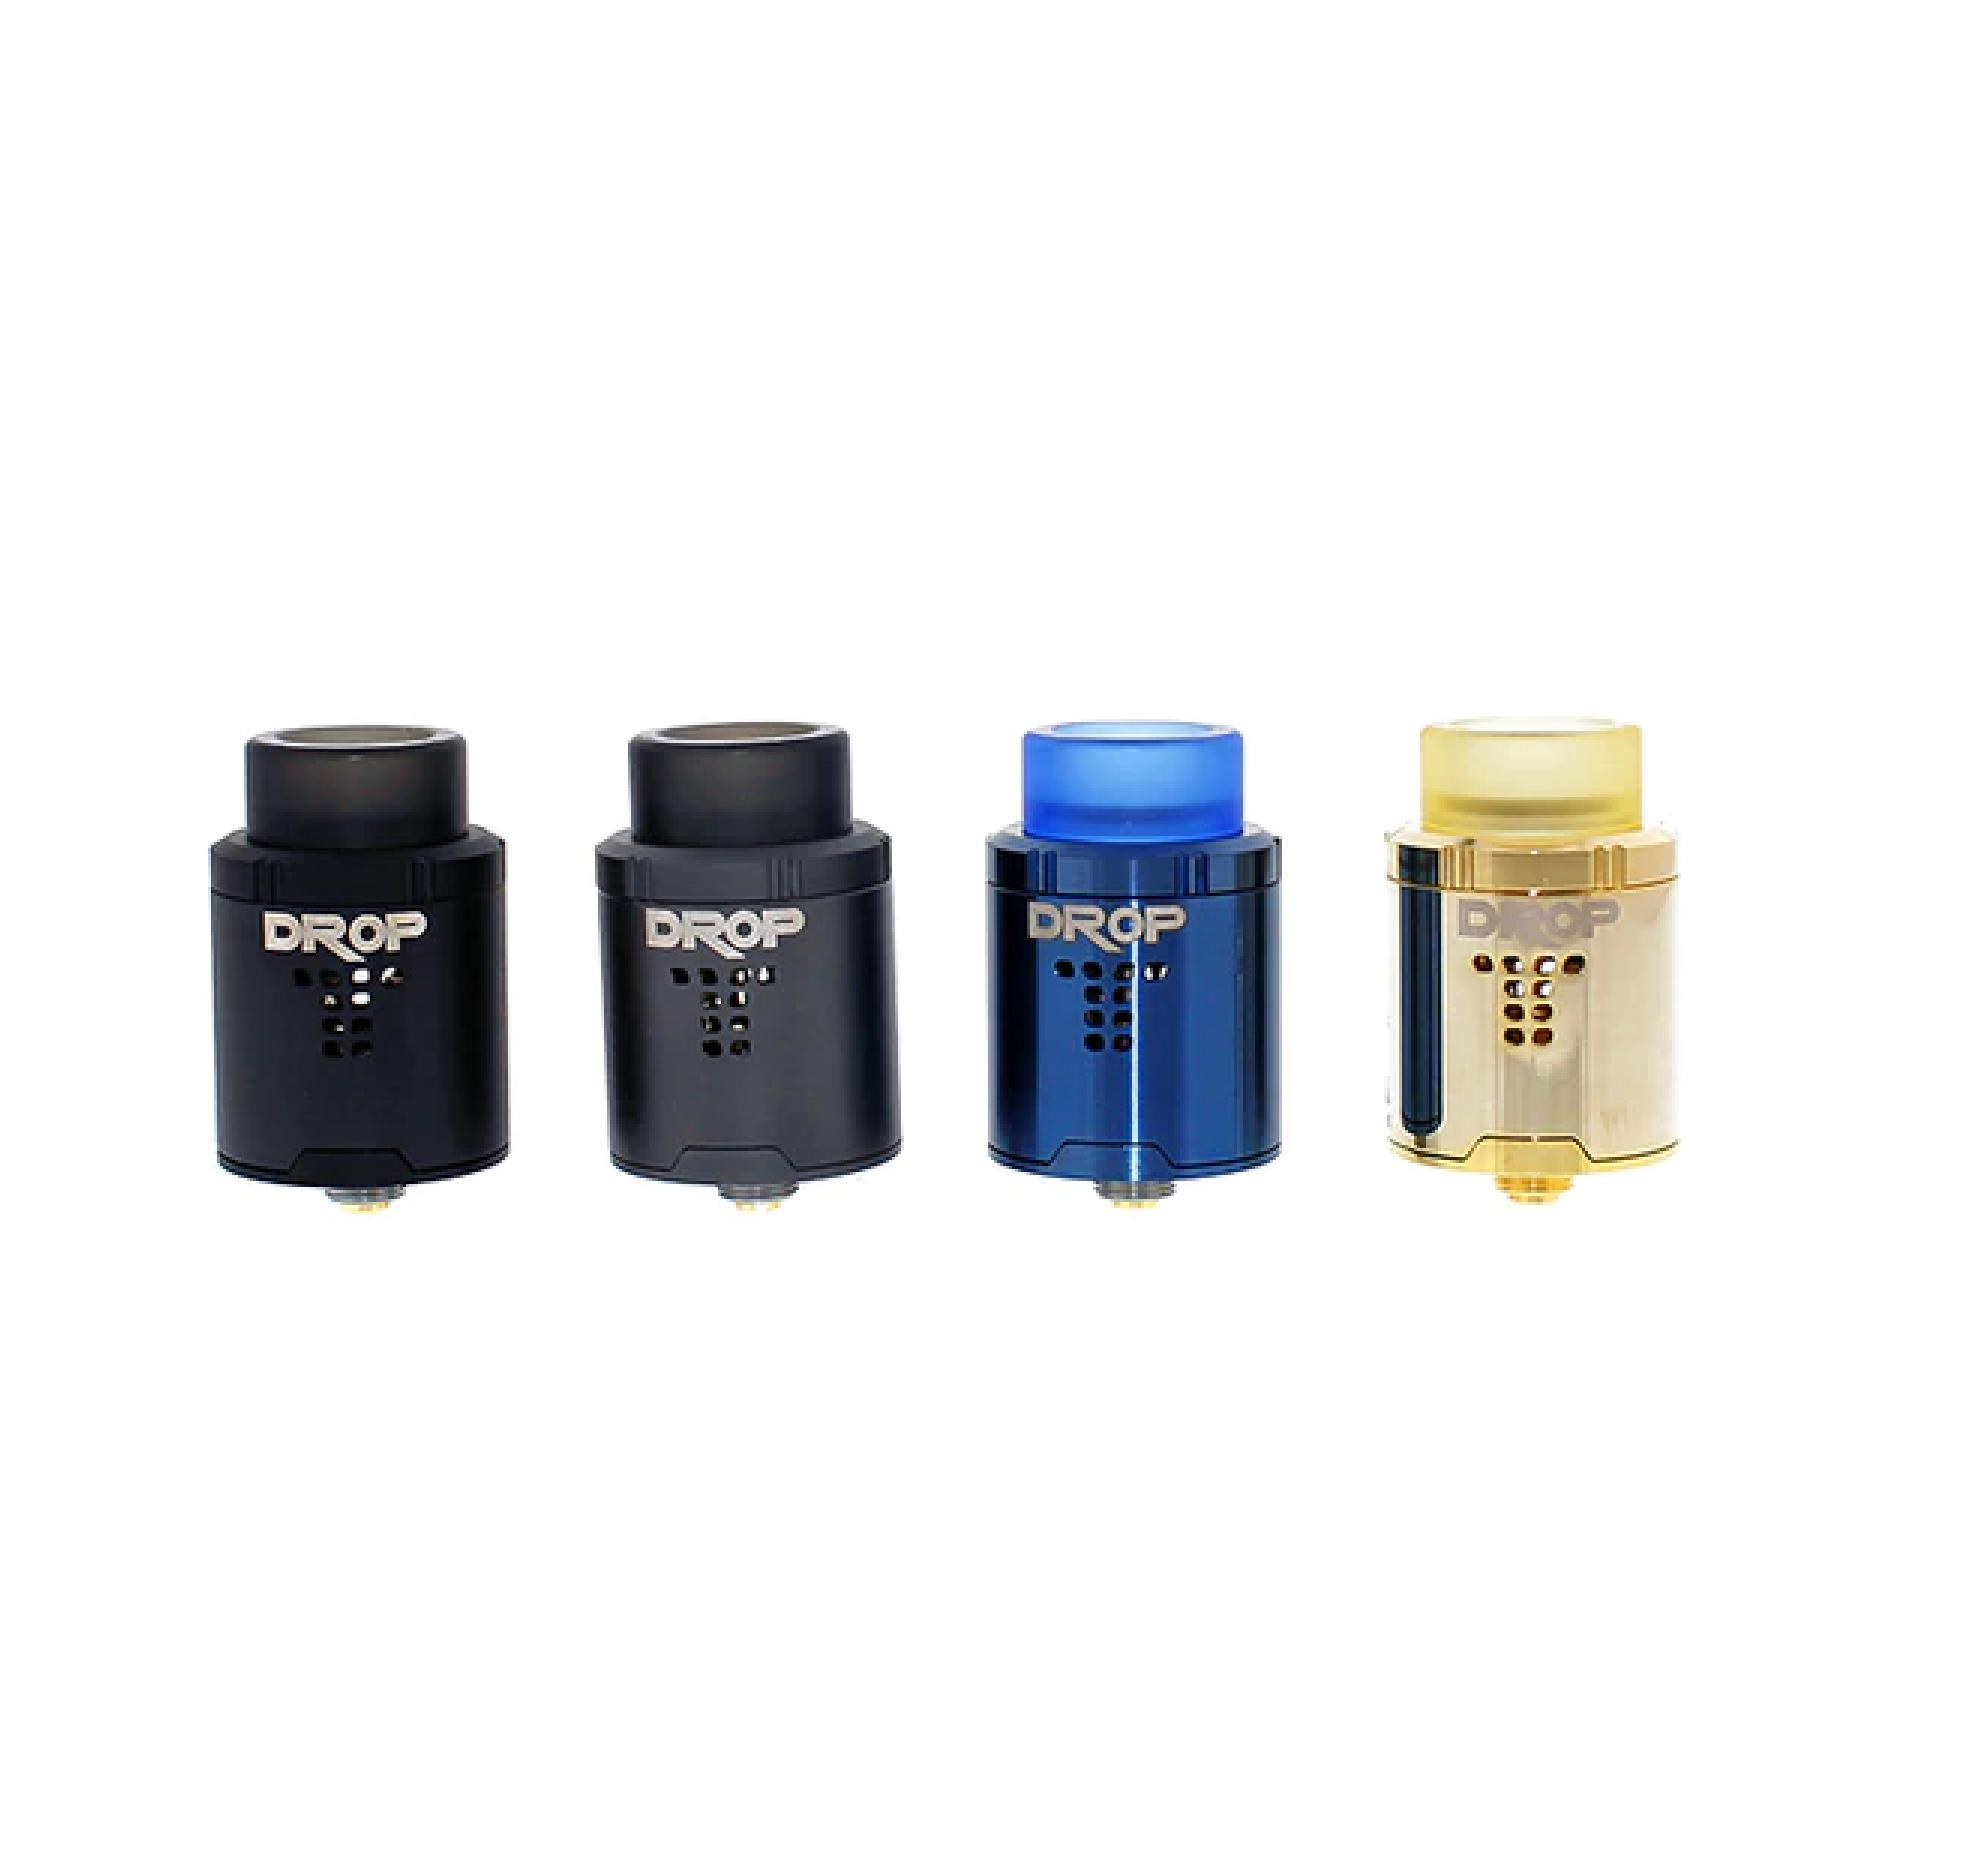 Atomizer For Sale Vape Prices Brands Specs In Geekvape Peerless 24mm Rda Authentic Philippines